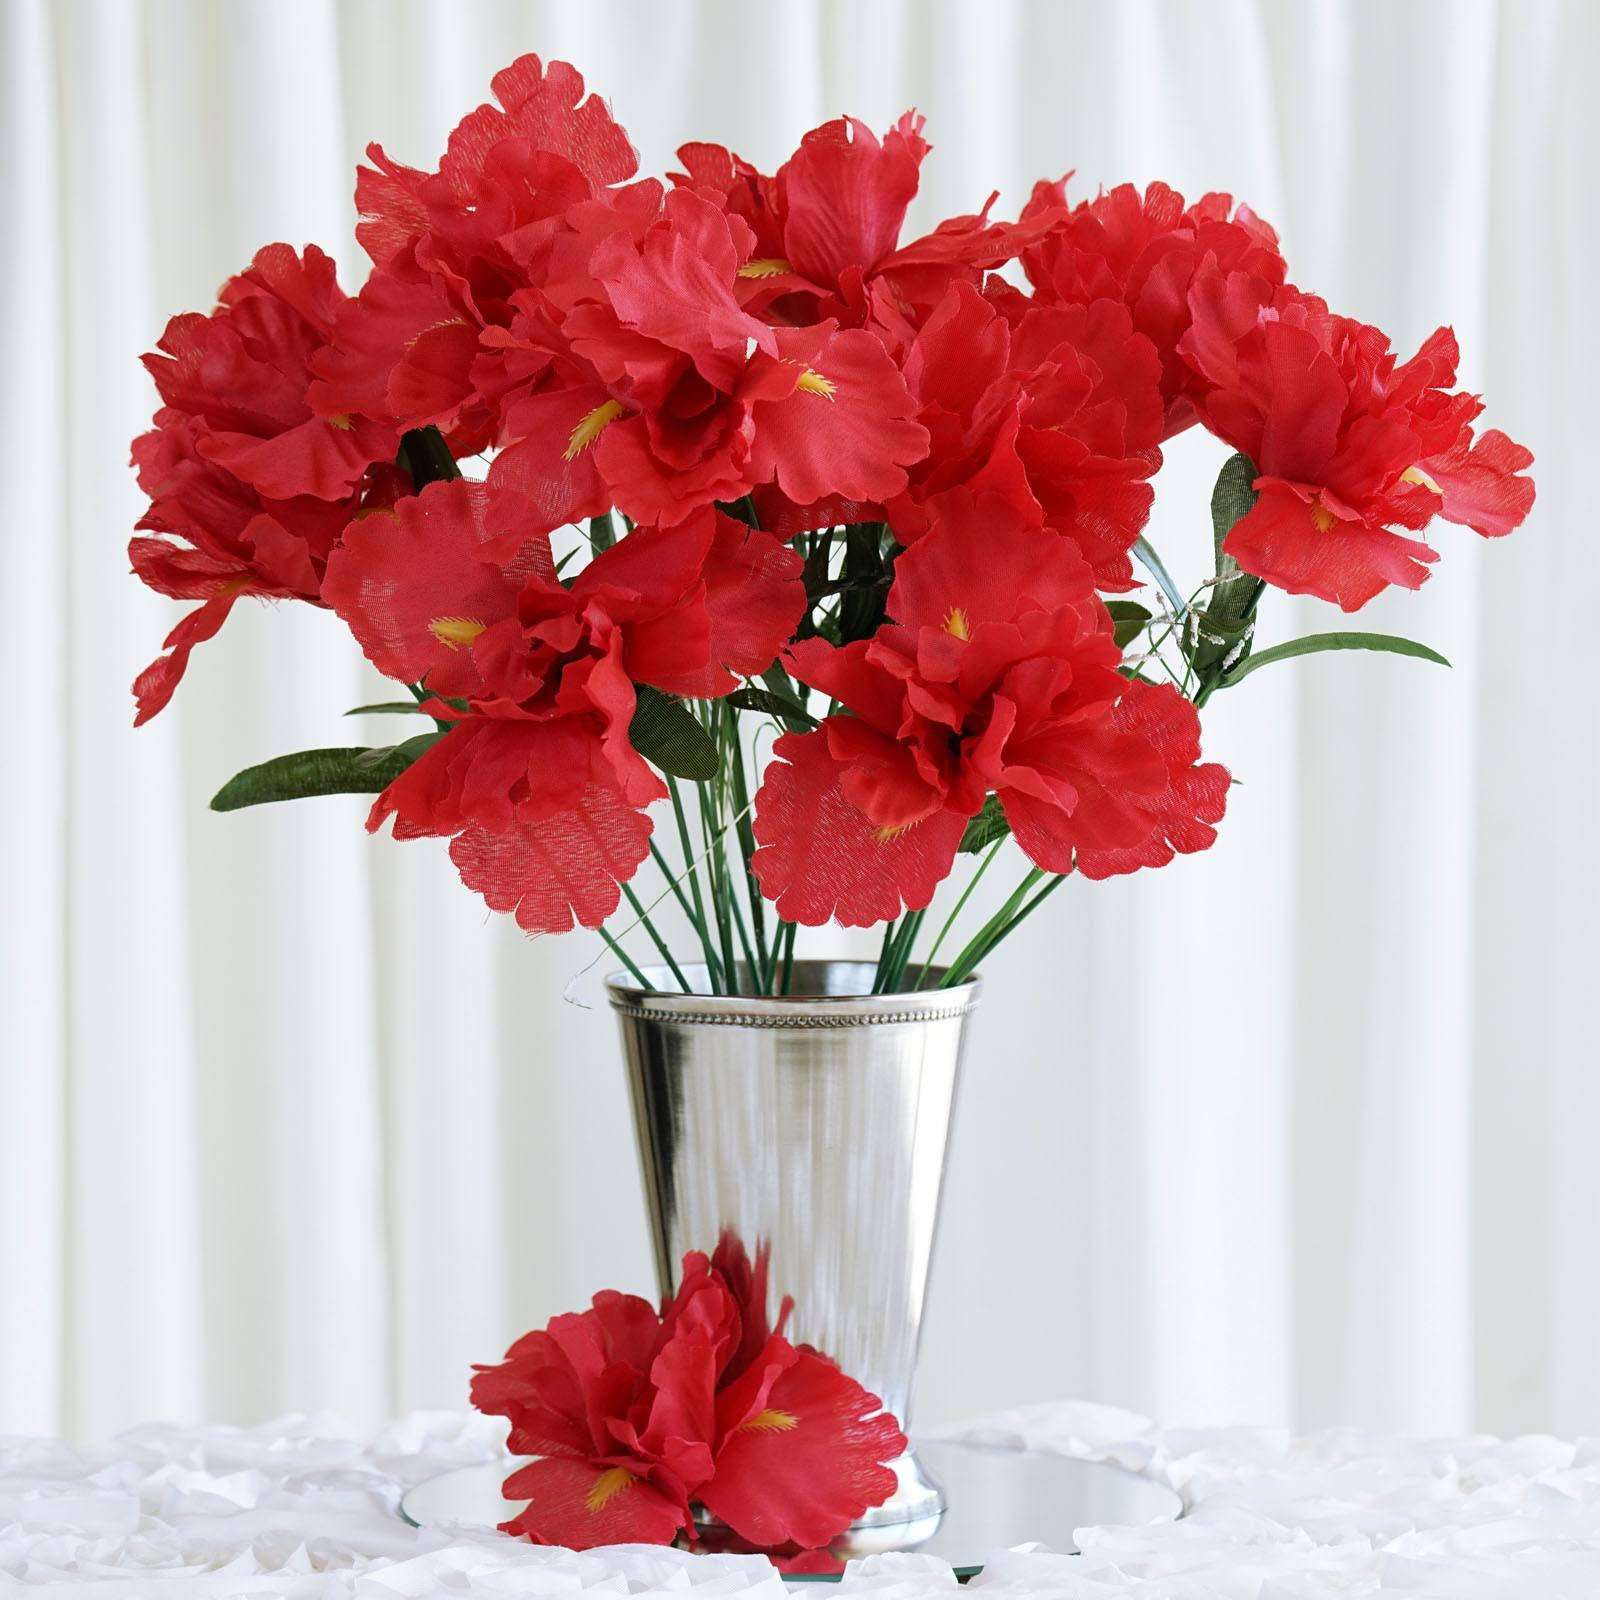 12 Bush 60 Pcs Red Artificial Silk Iris Flowers Wedding Vase